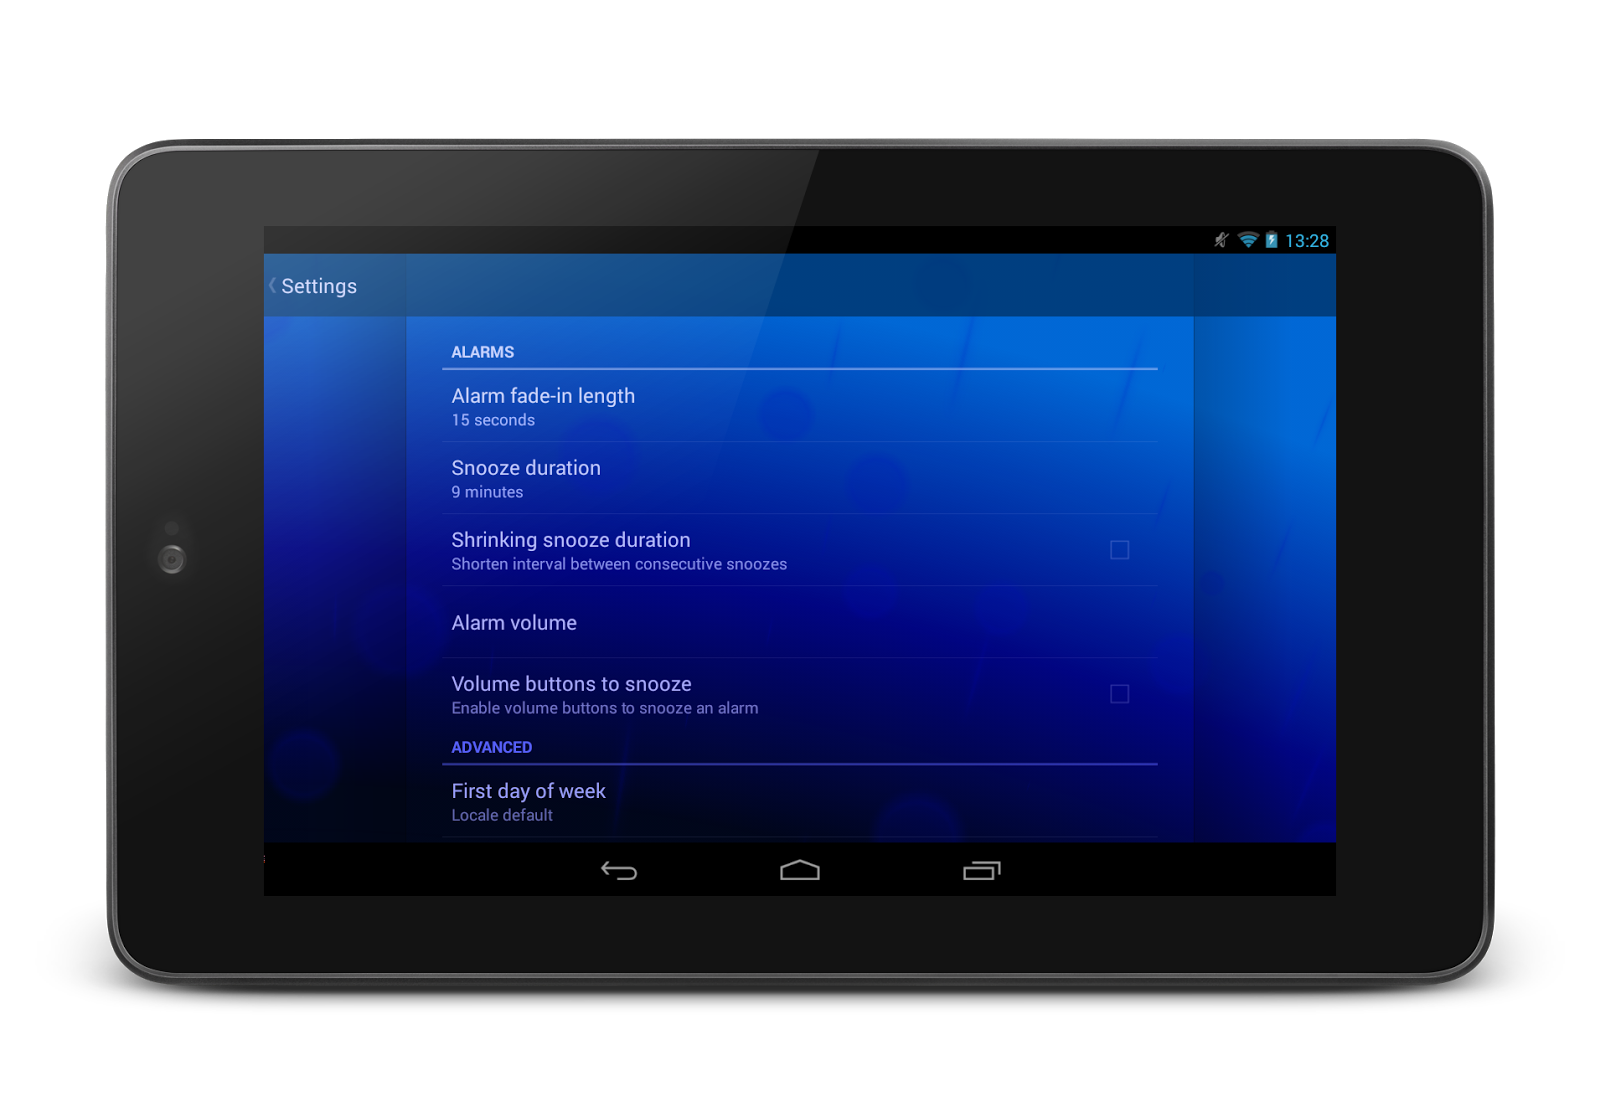 The New Yardstick for the Best Android Design is Here